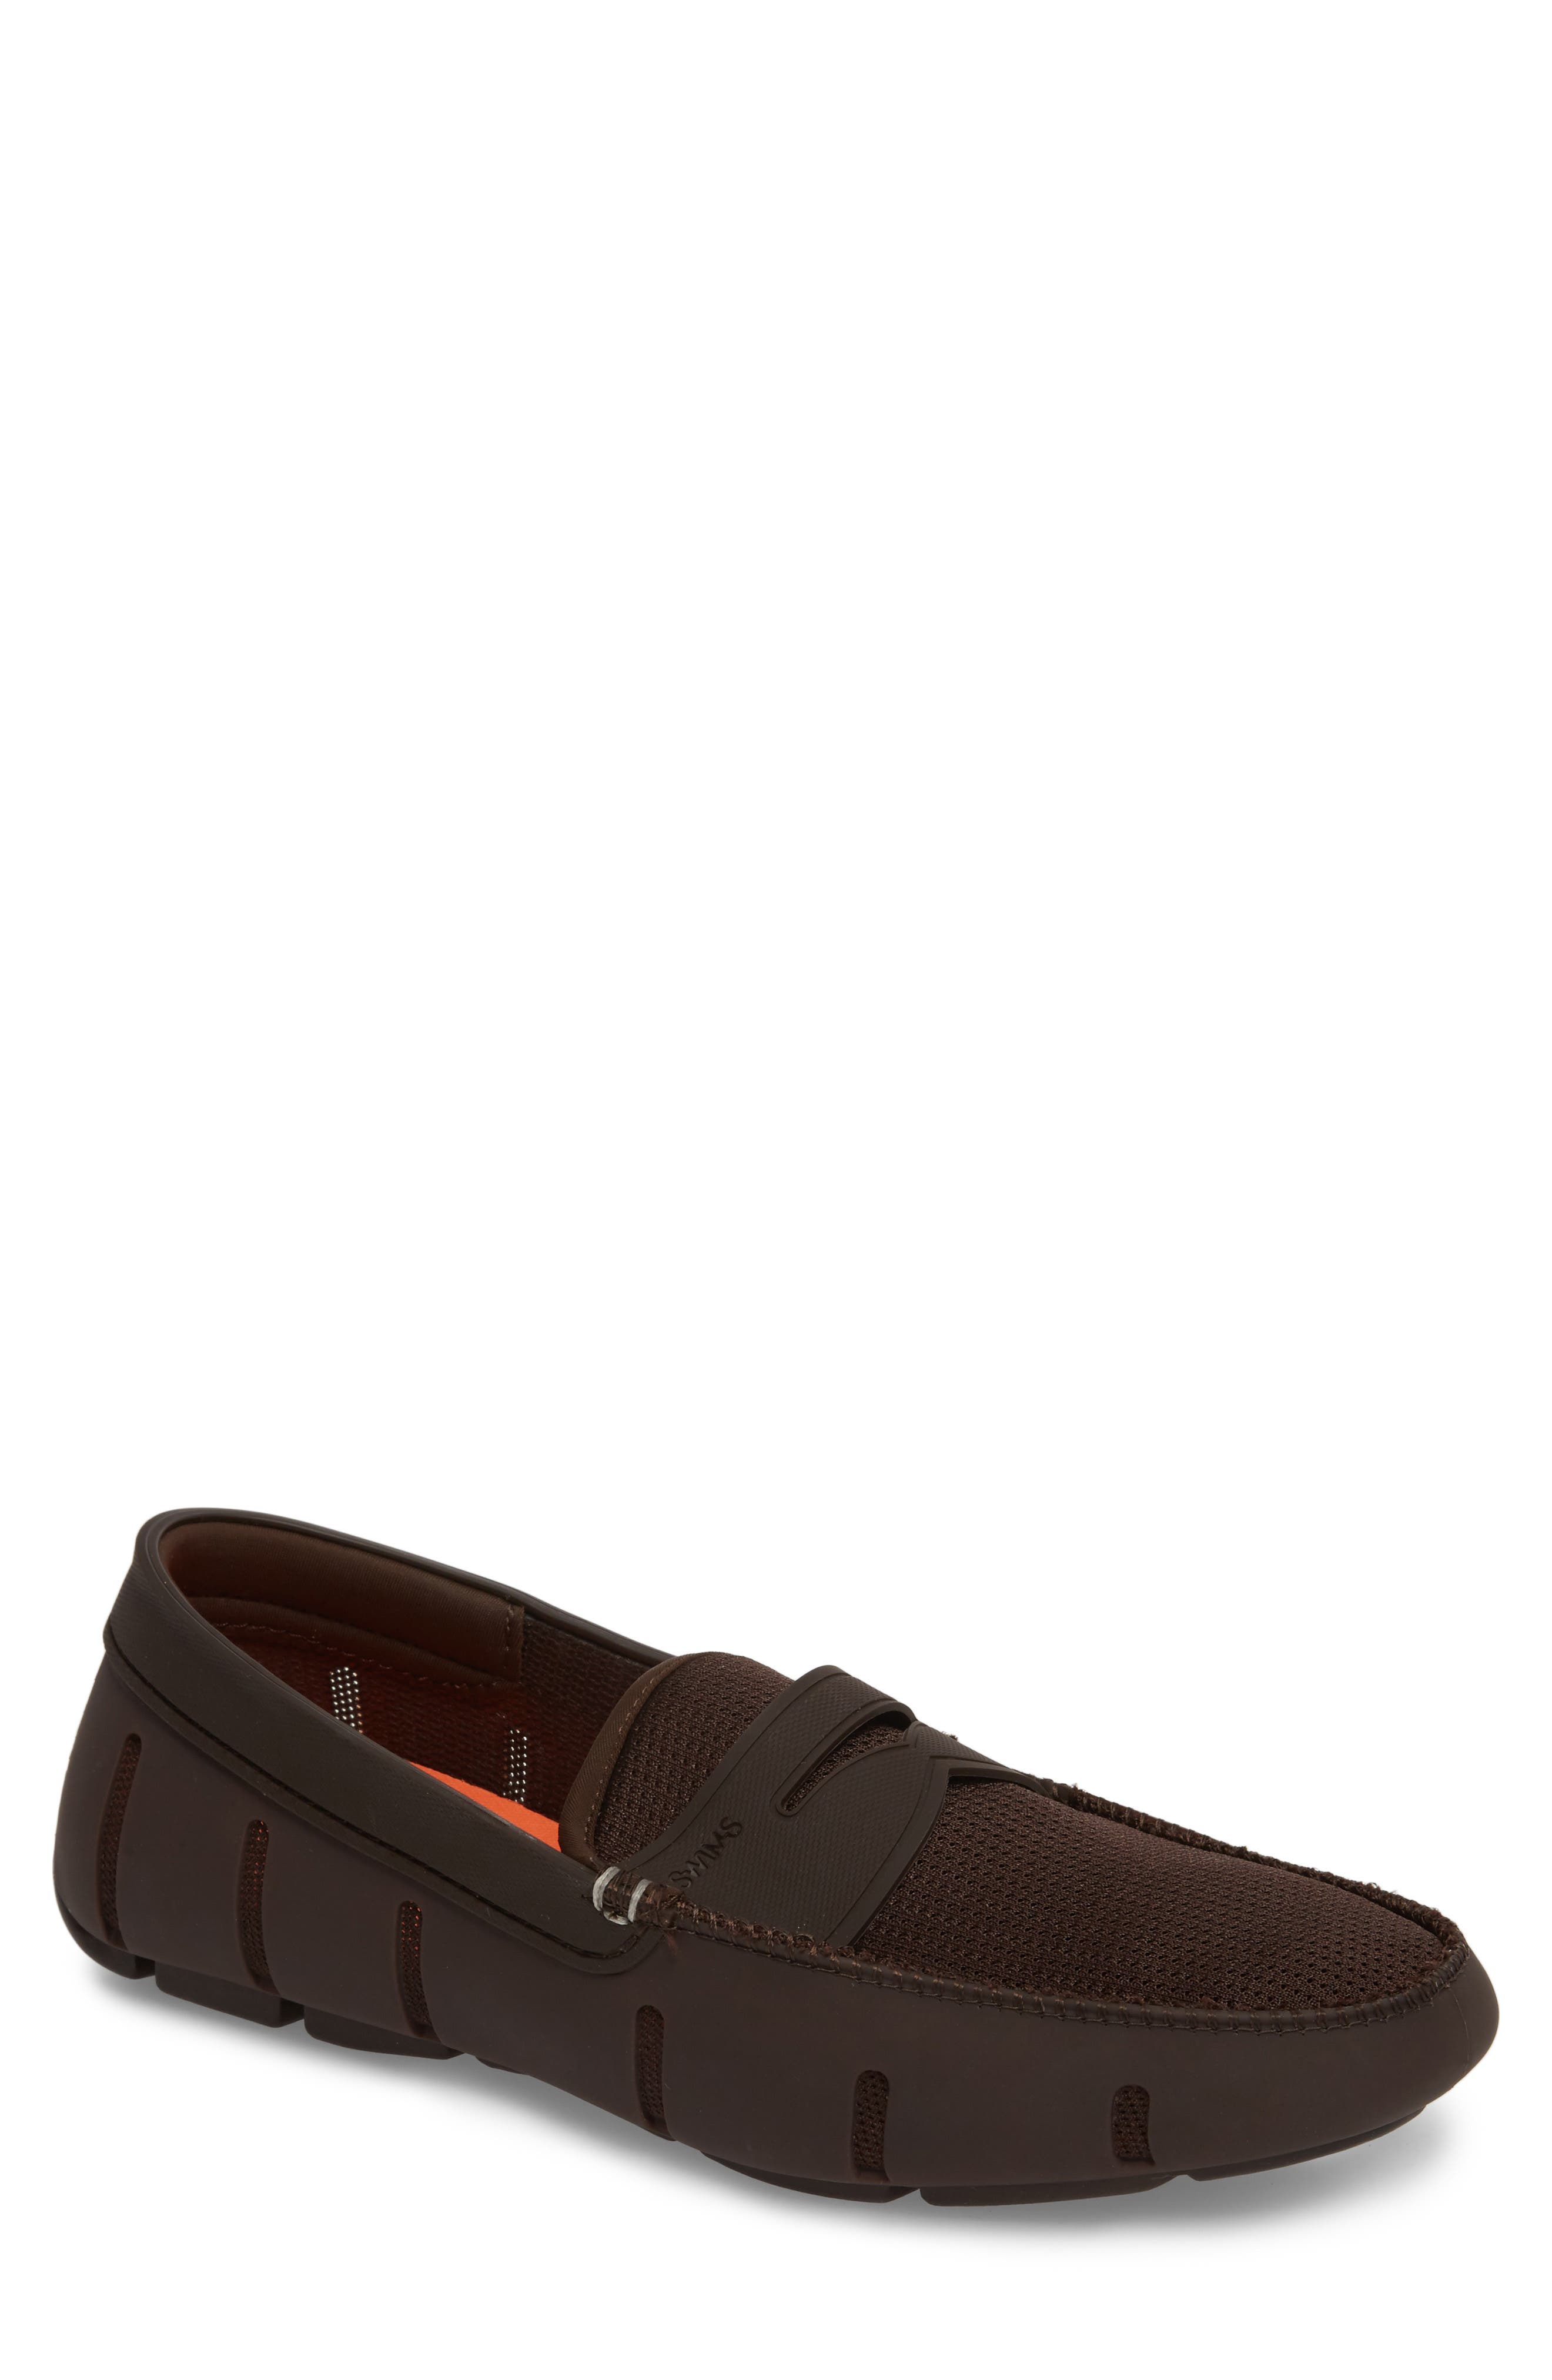 Washable Penny Loafer,                             Main thumbnail 1, color,                             242